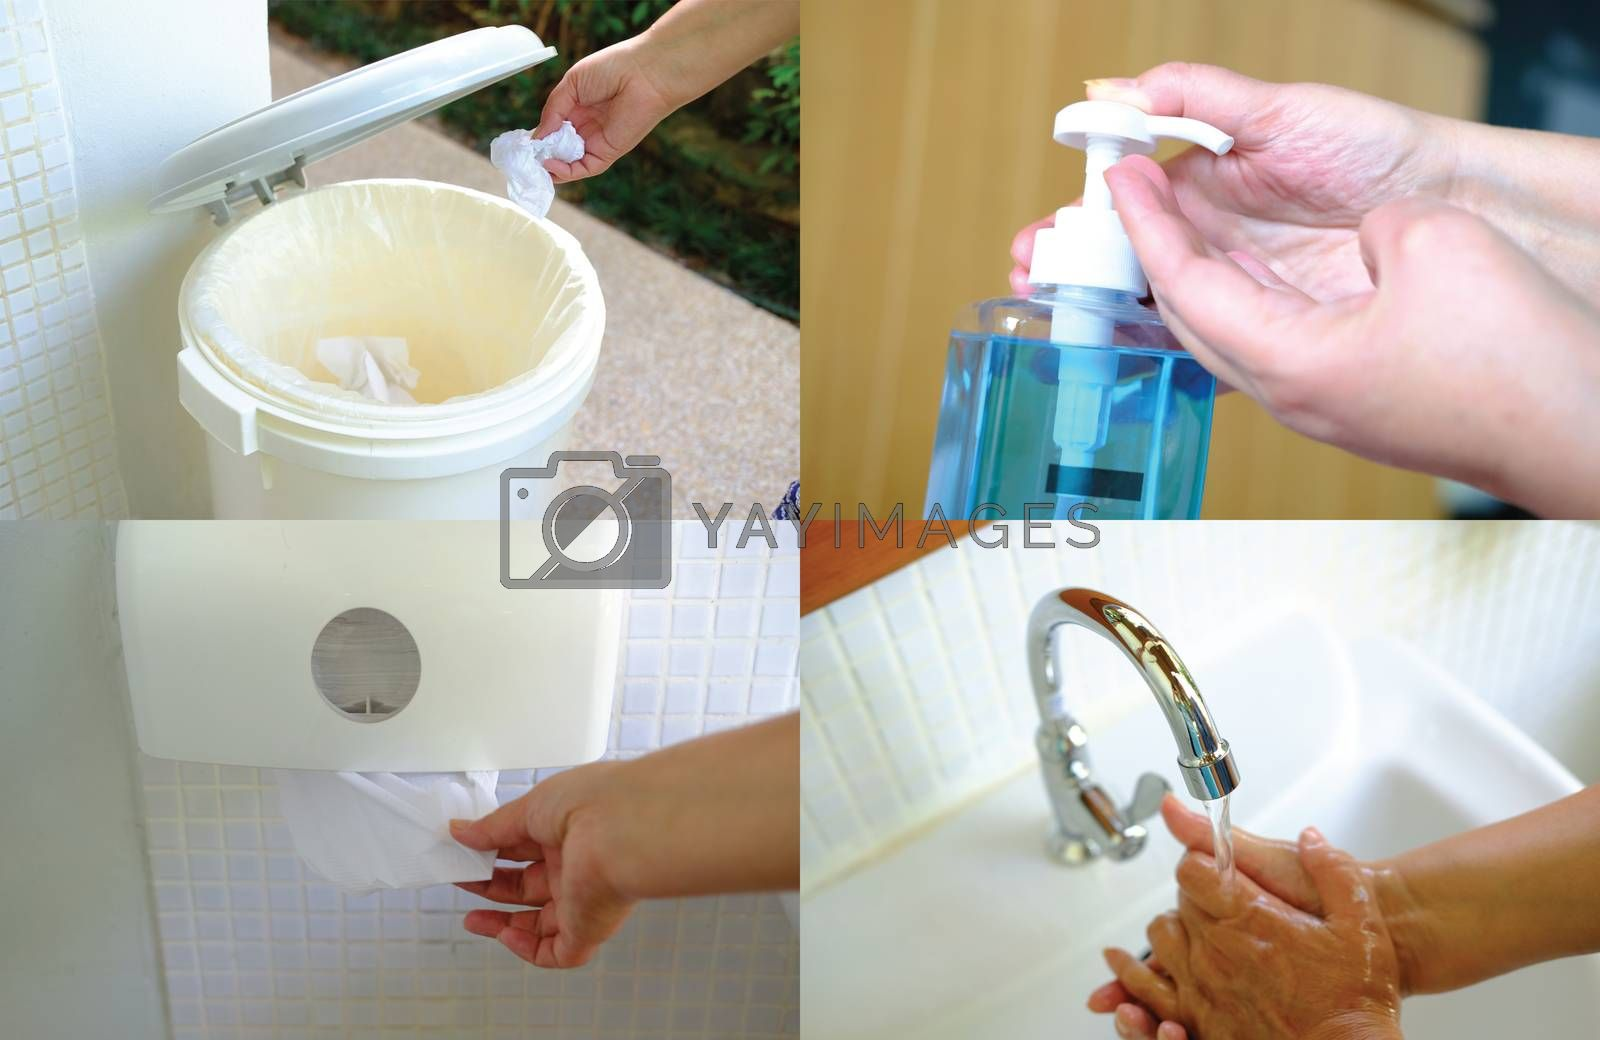 Set closeup imige of personal hygiene Equipment. Hygiene and healthy life concept. Equipment for Cleaning hands and drying hands